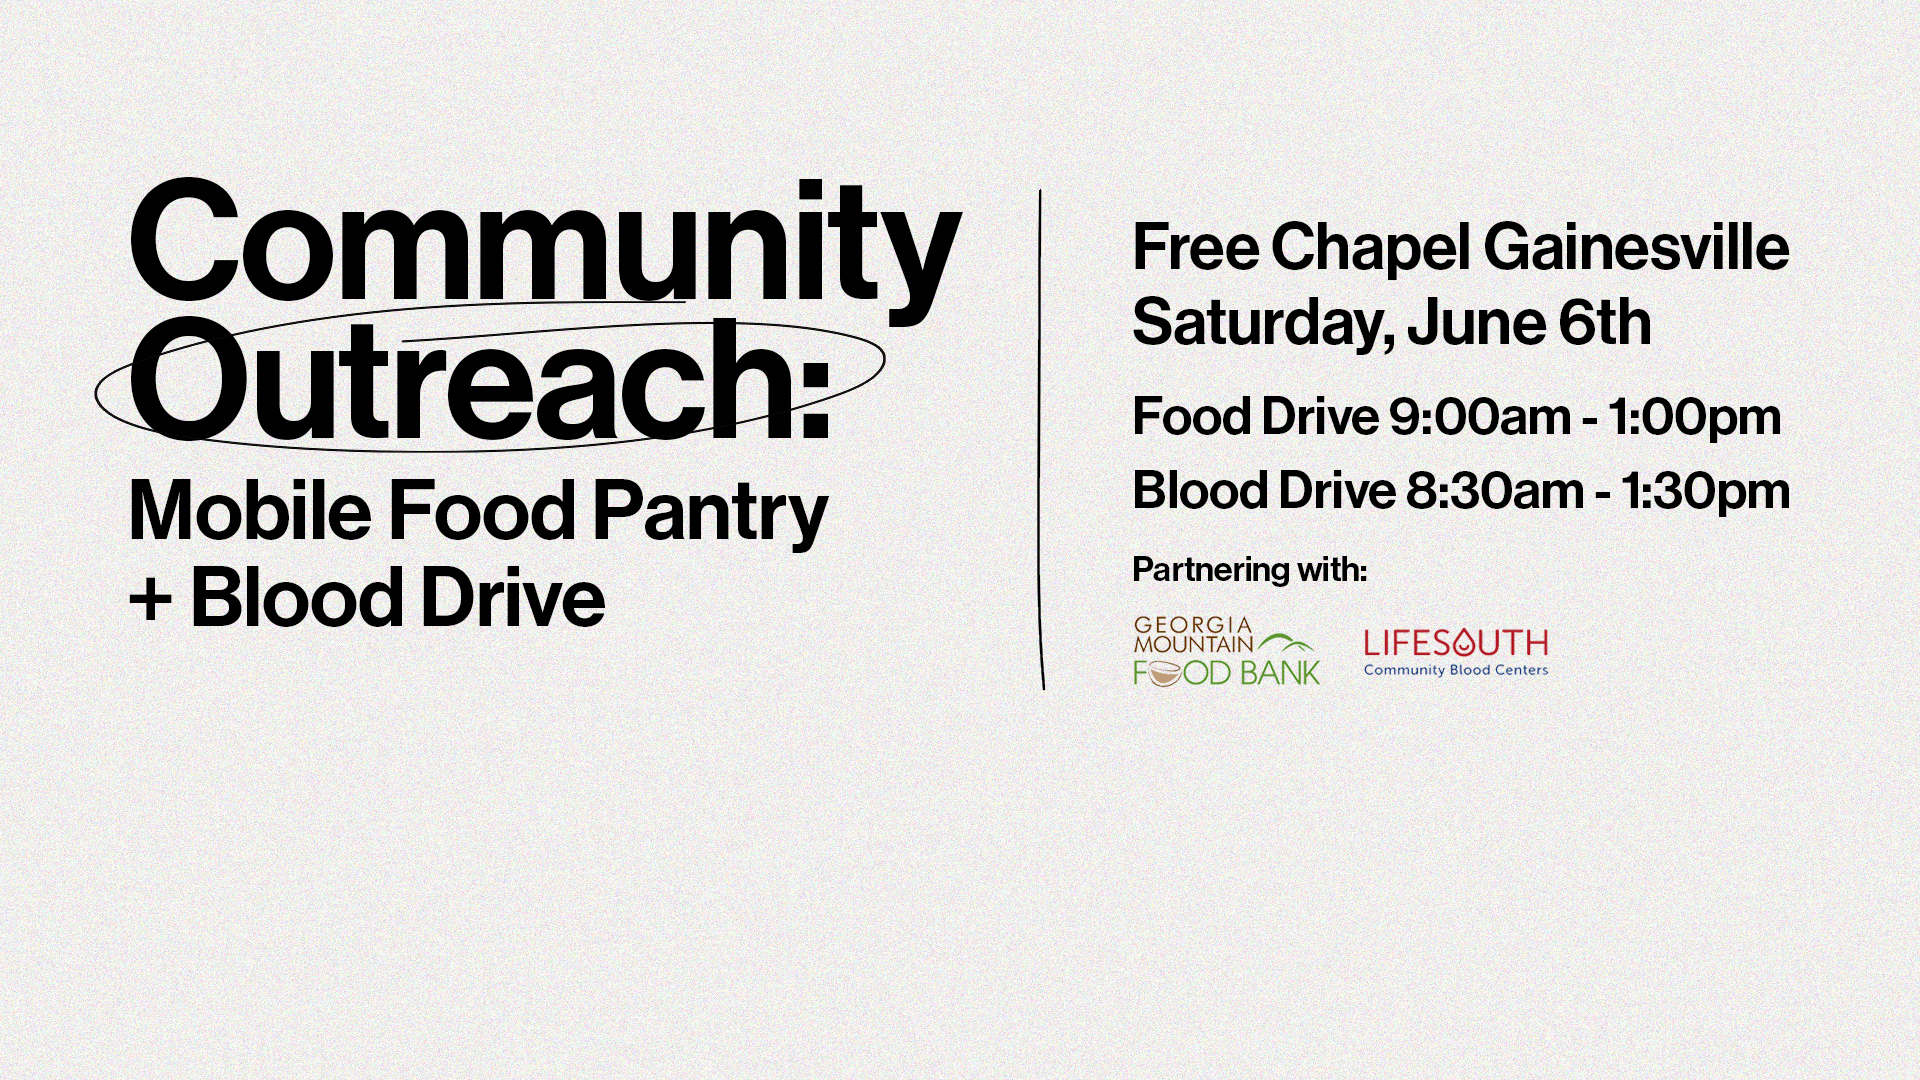 Mobile Food Pantry + Blood Drive at the Gwinnett campus